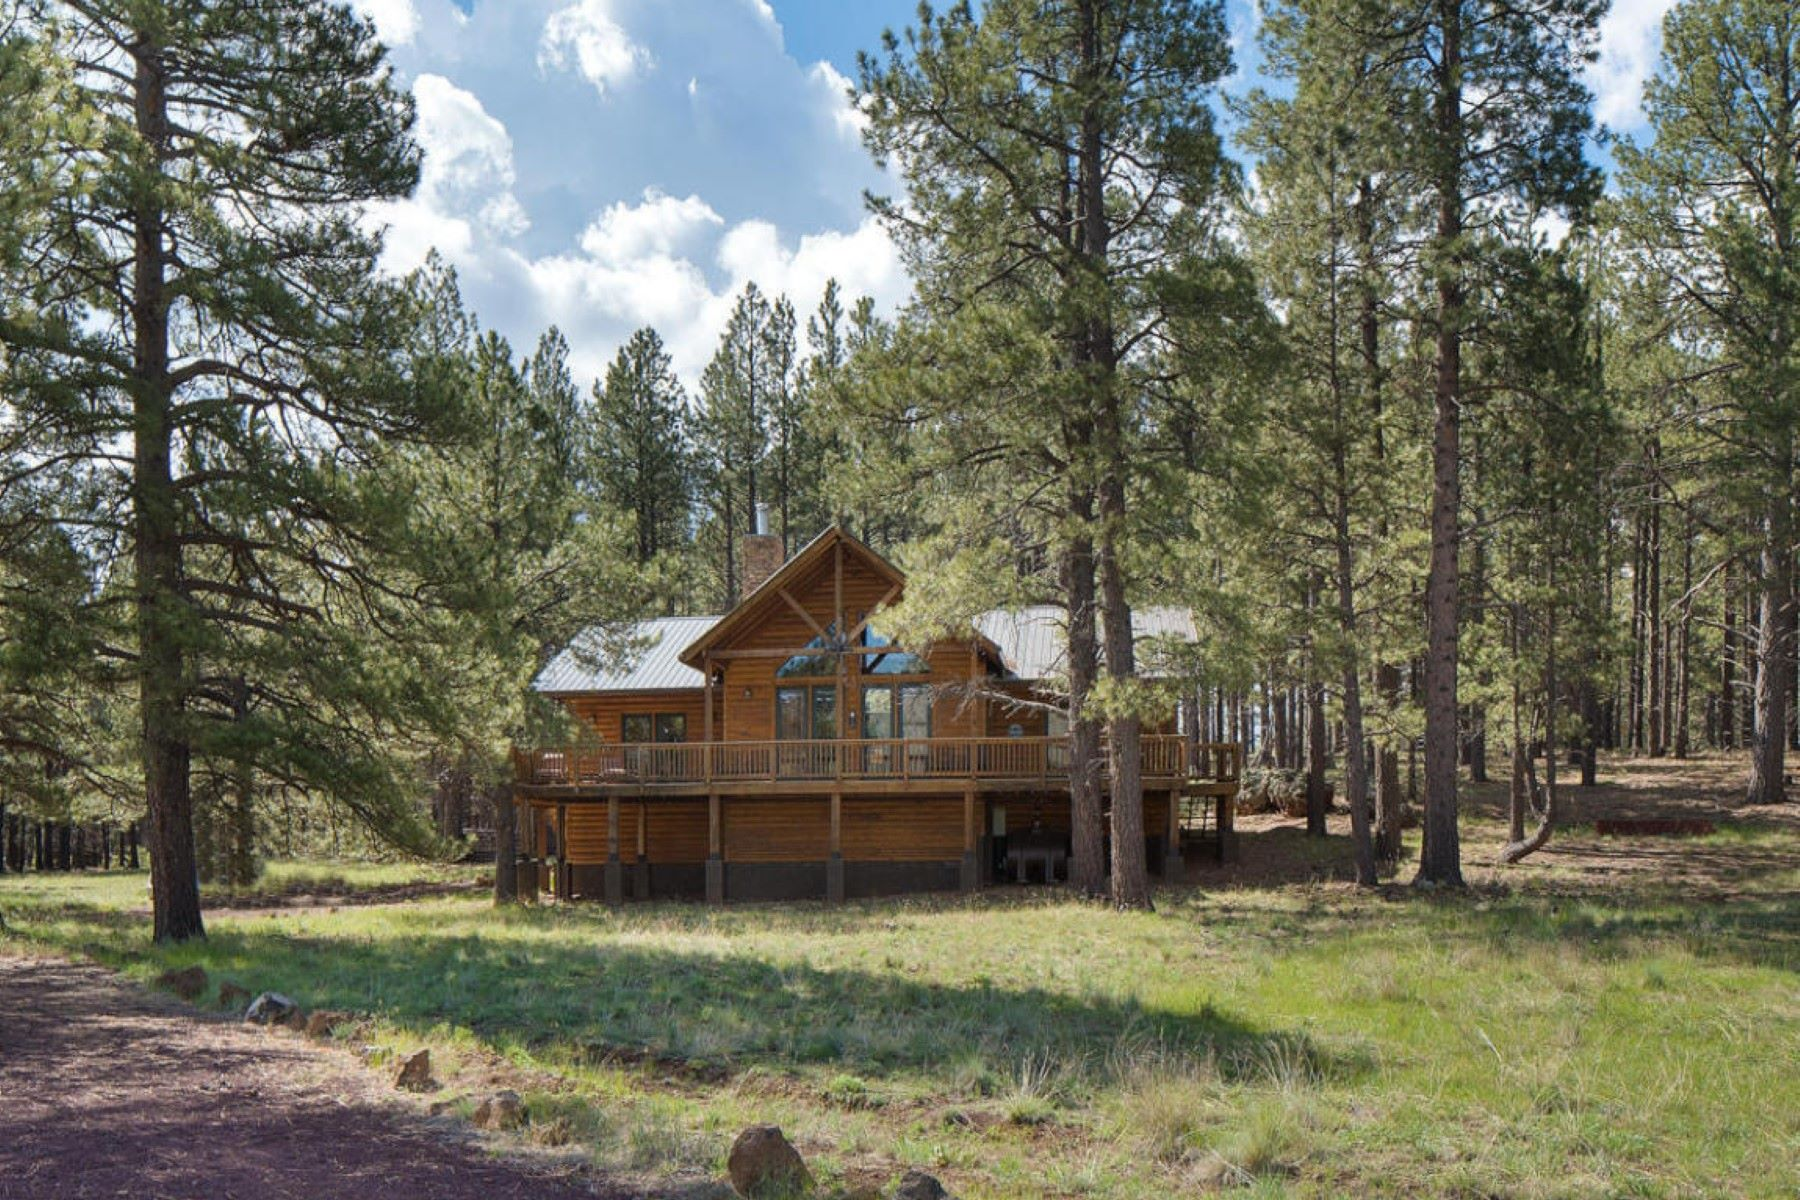 Moradia para Venda às This is a rare opportunity to own a private custom log sided mountain retreat. 17242 Crowley TRL Flagstaff, Arizona, 86001 Estados Unidos